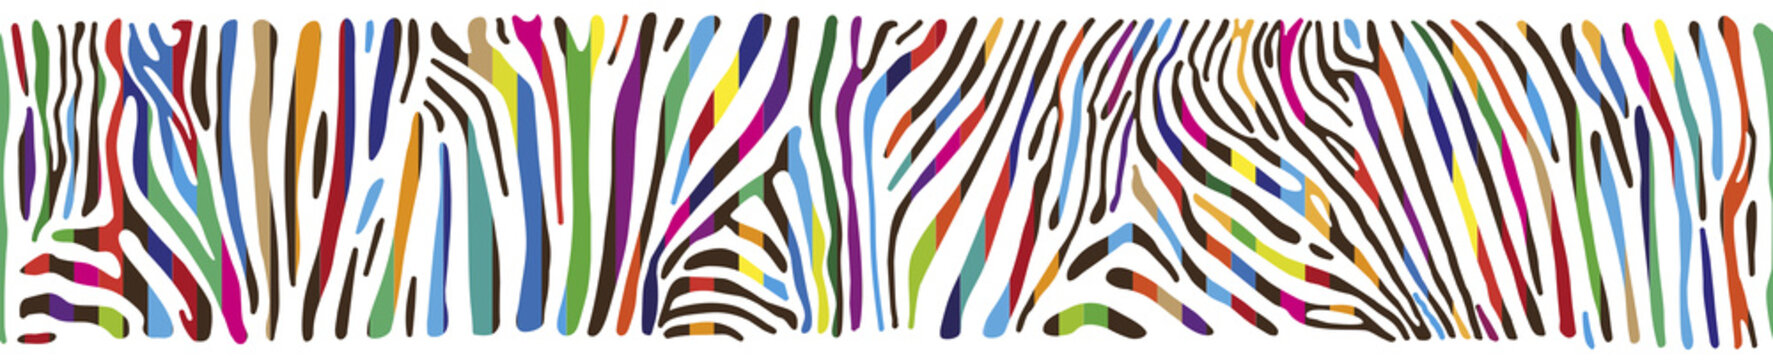 Background with multicolored Zebra skin